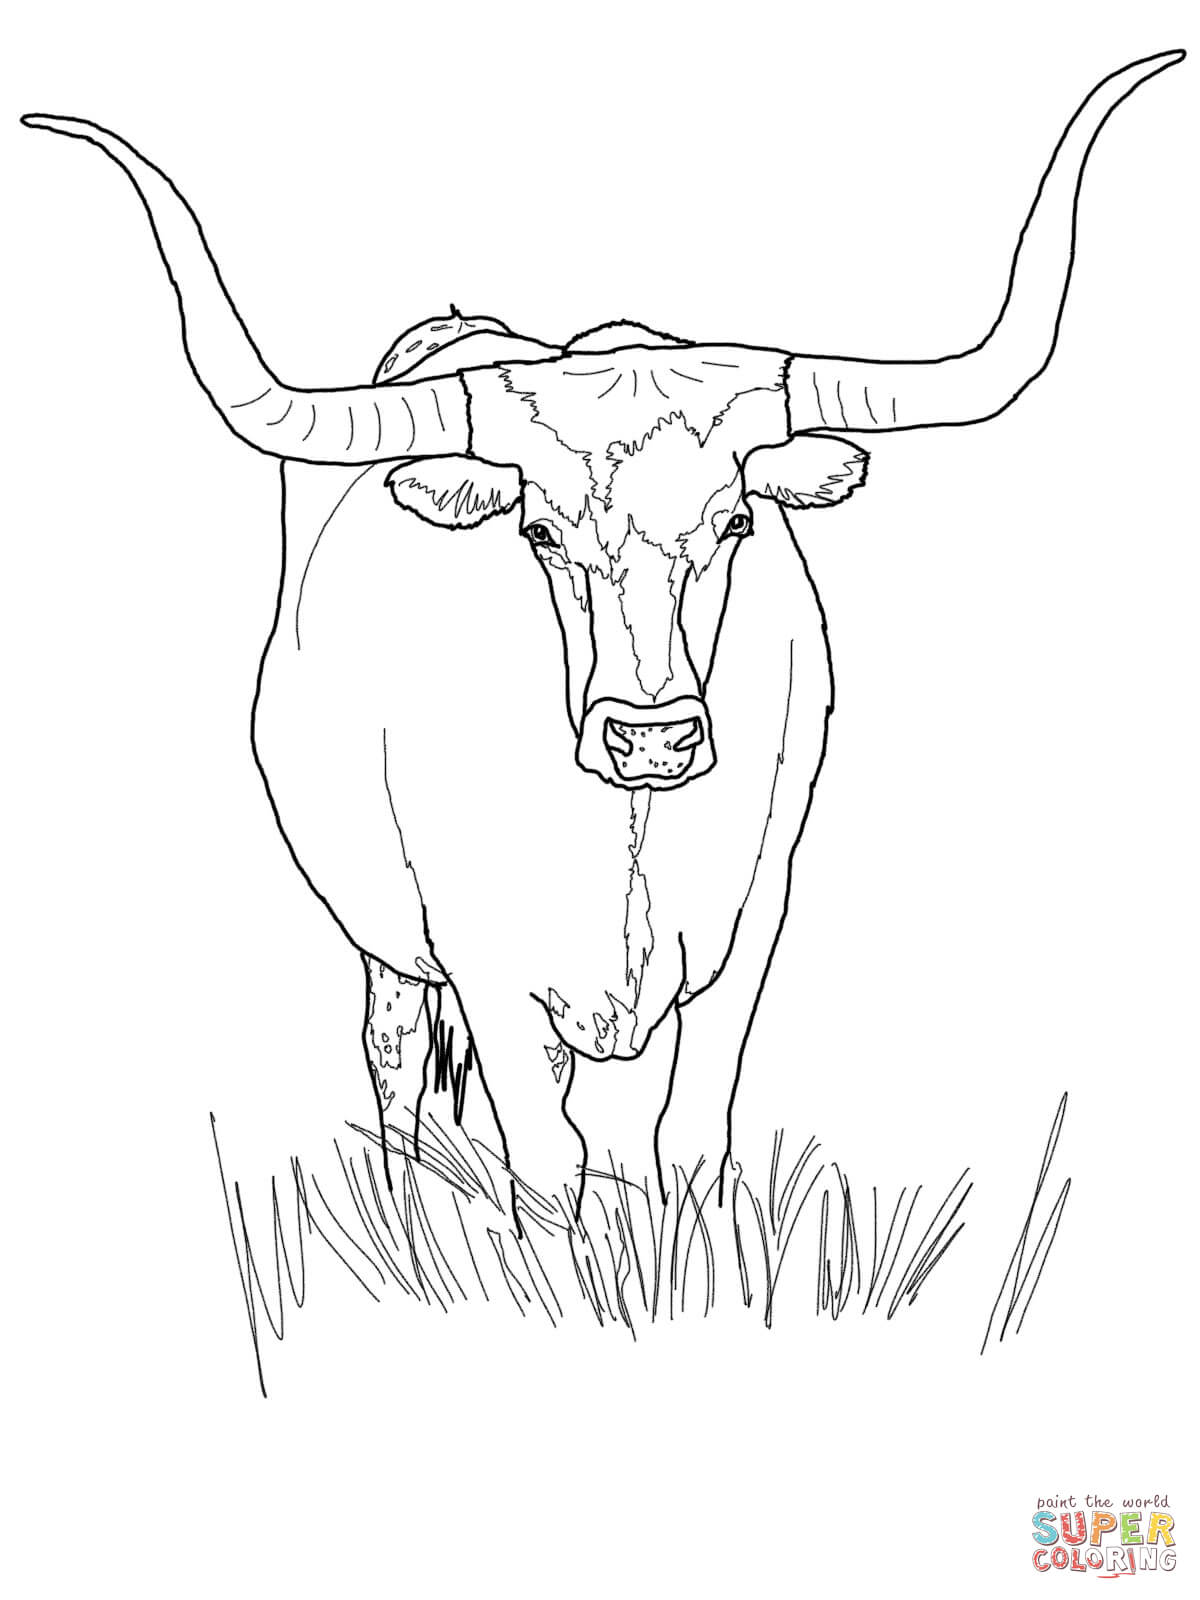 bull-coloring-page-0014-q1